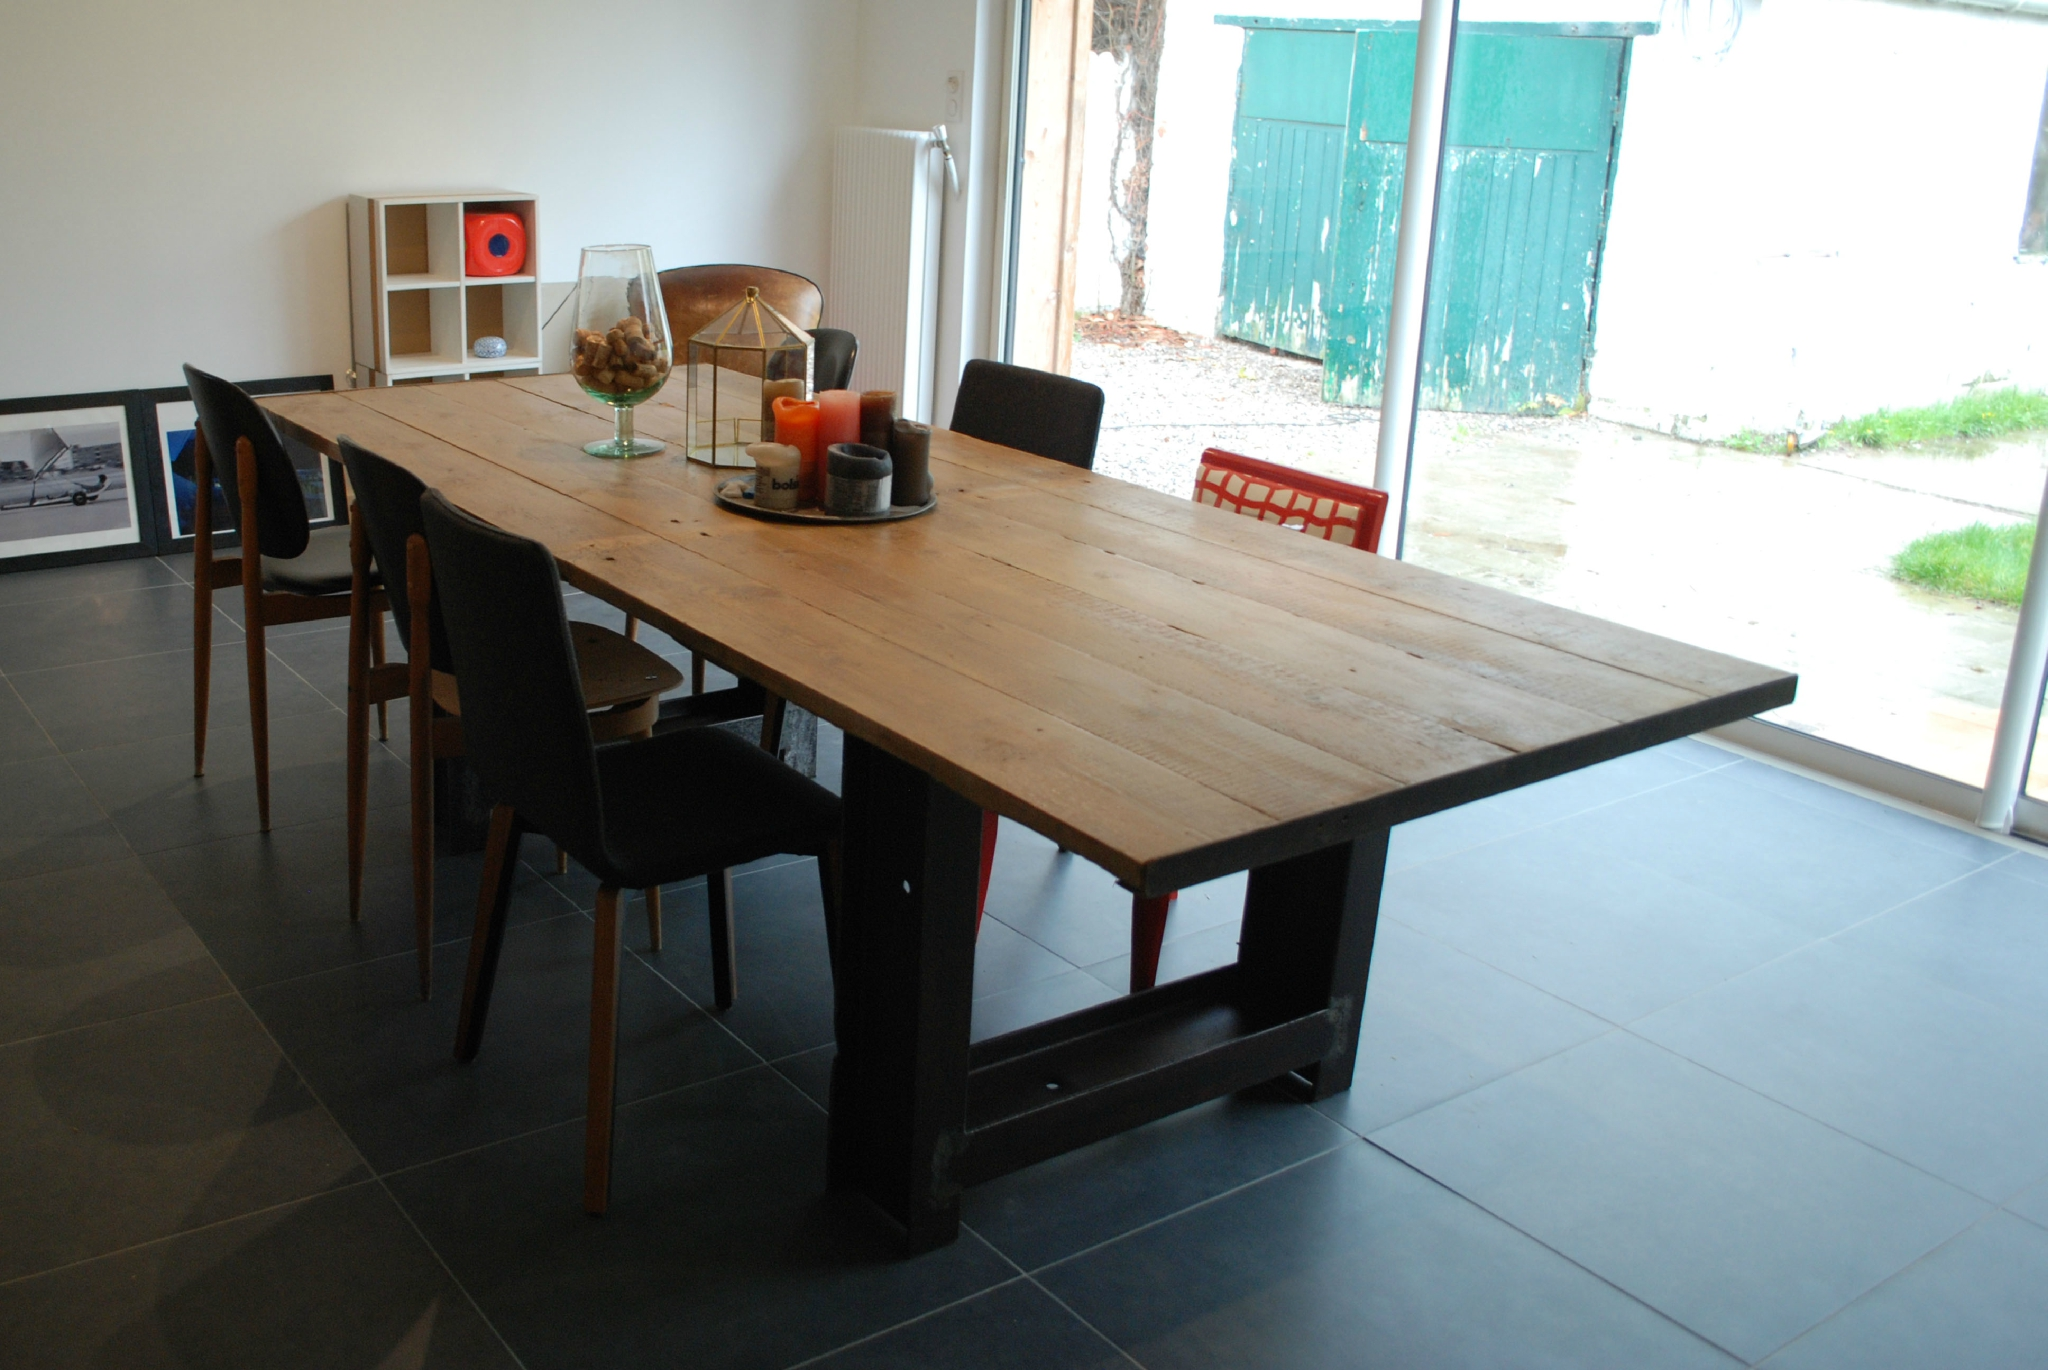 La table enfin les bricoleuzes for Fabriquer une table extensible